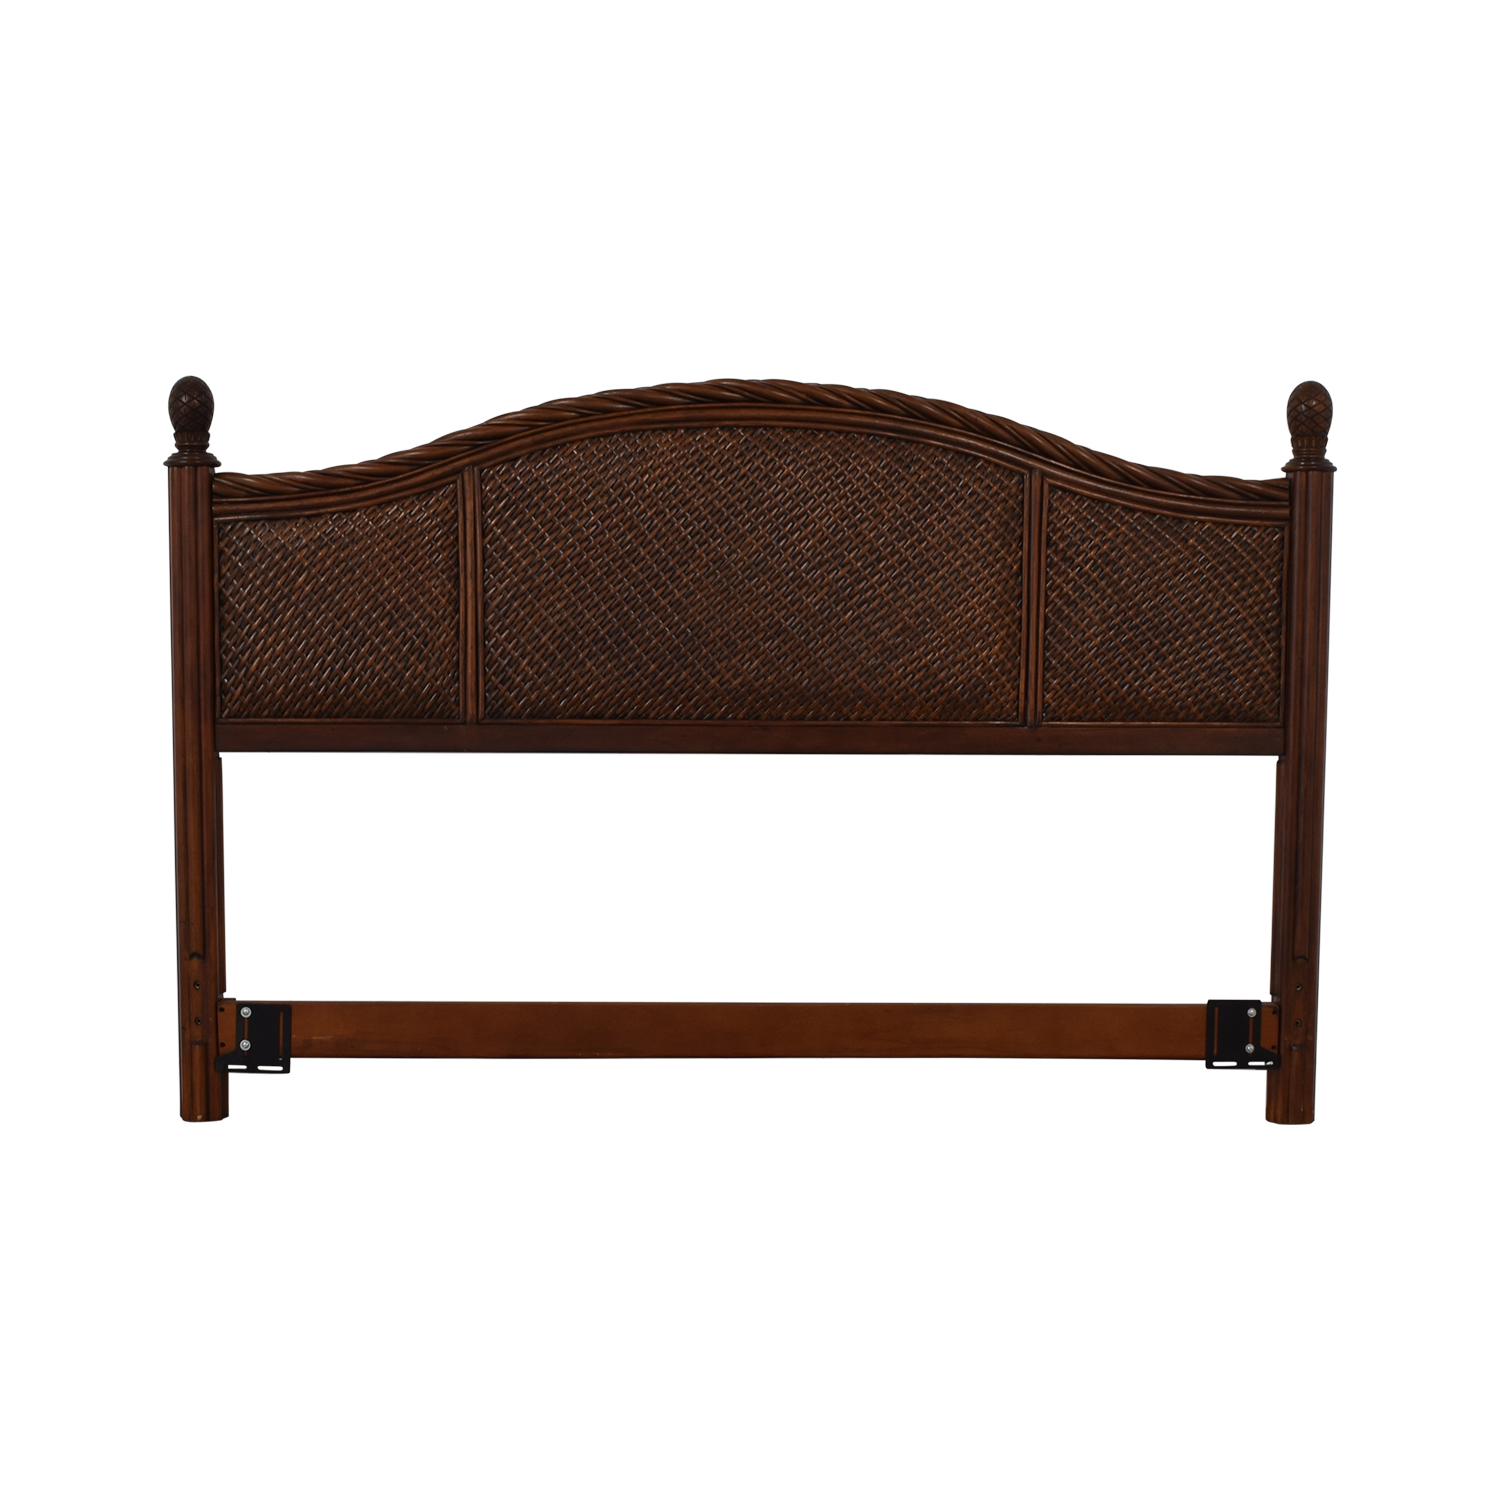 Home Styles Home Styles Marco Island King Headboard on sale